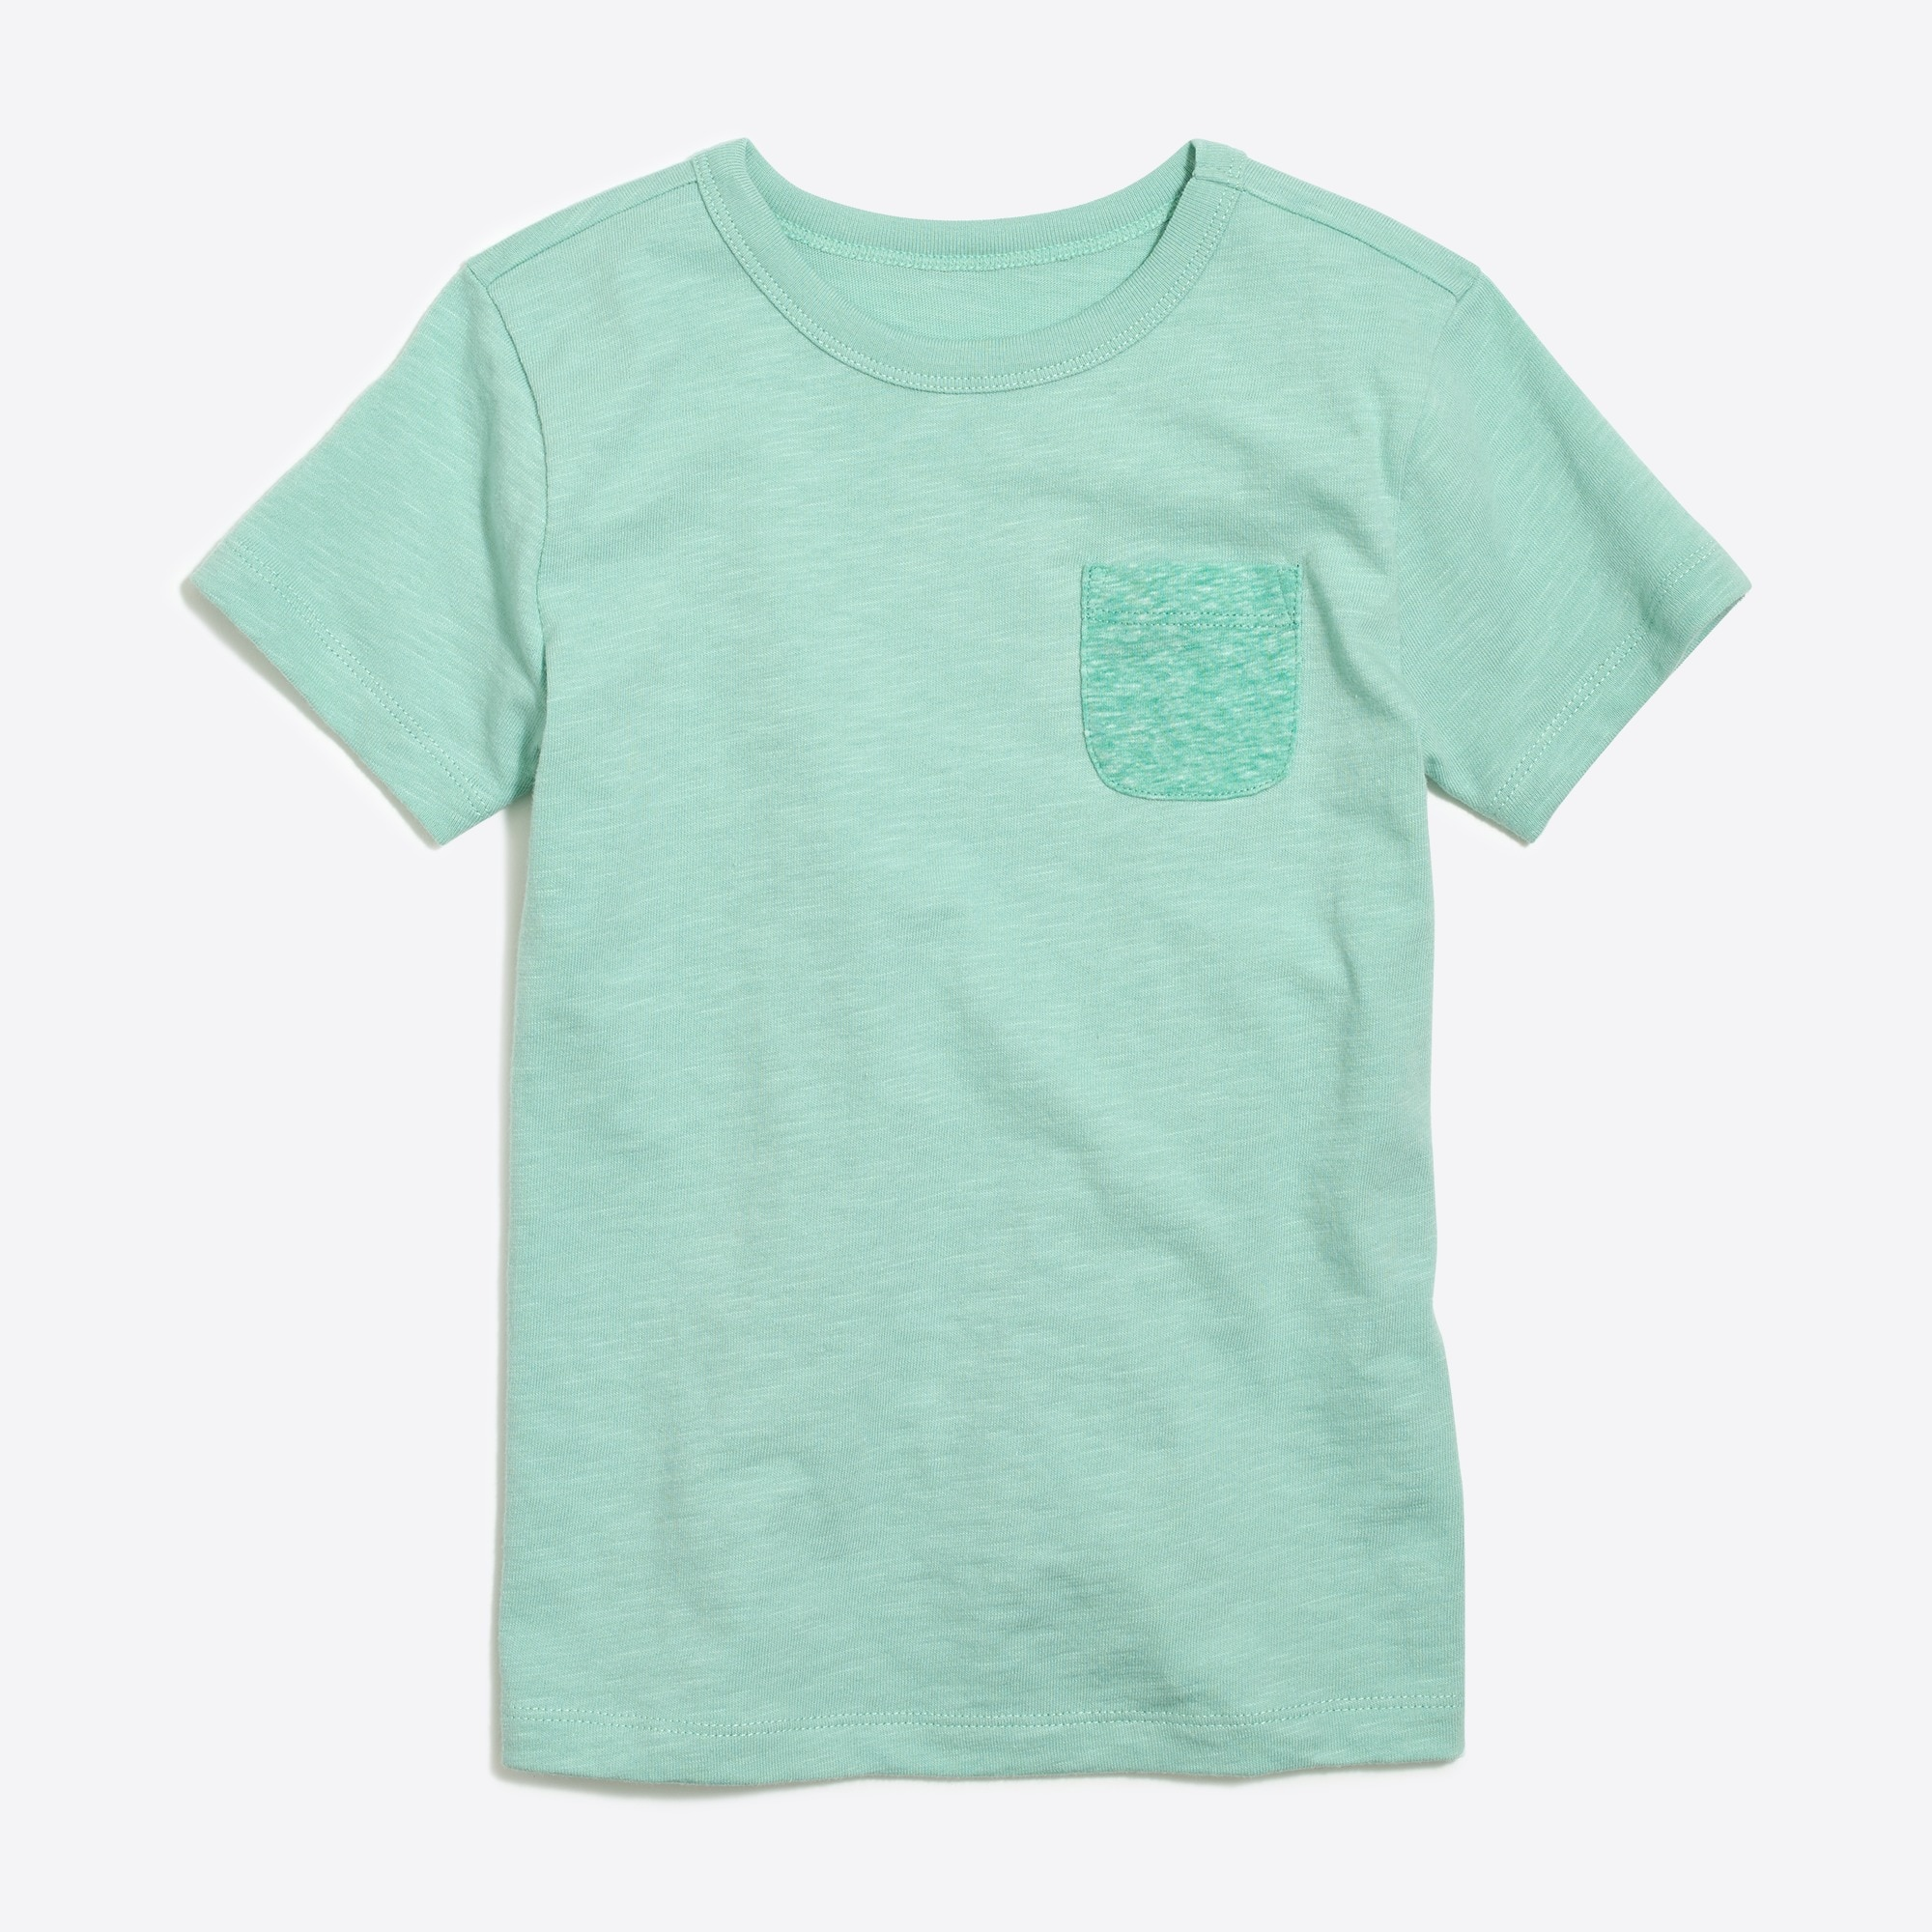 Boys' contrast-pocket t-SHIRT factoryboys the camp shop c